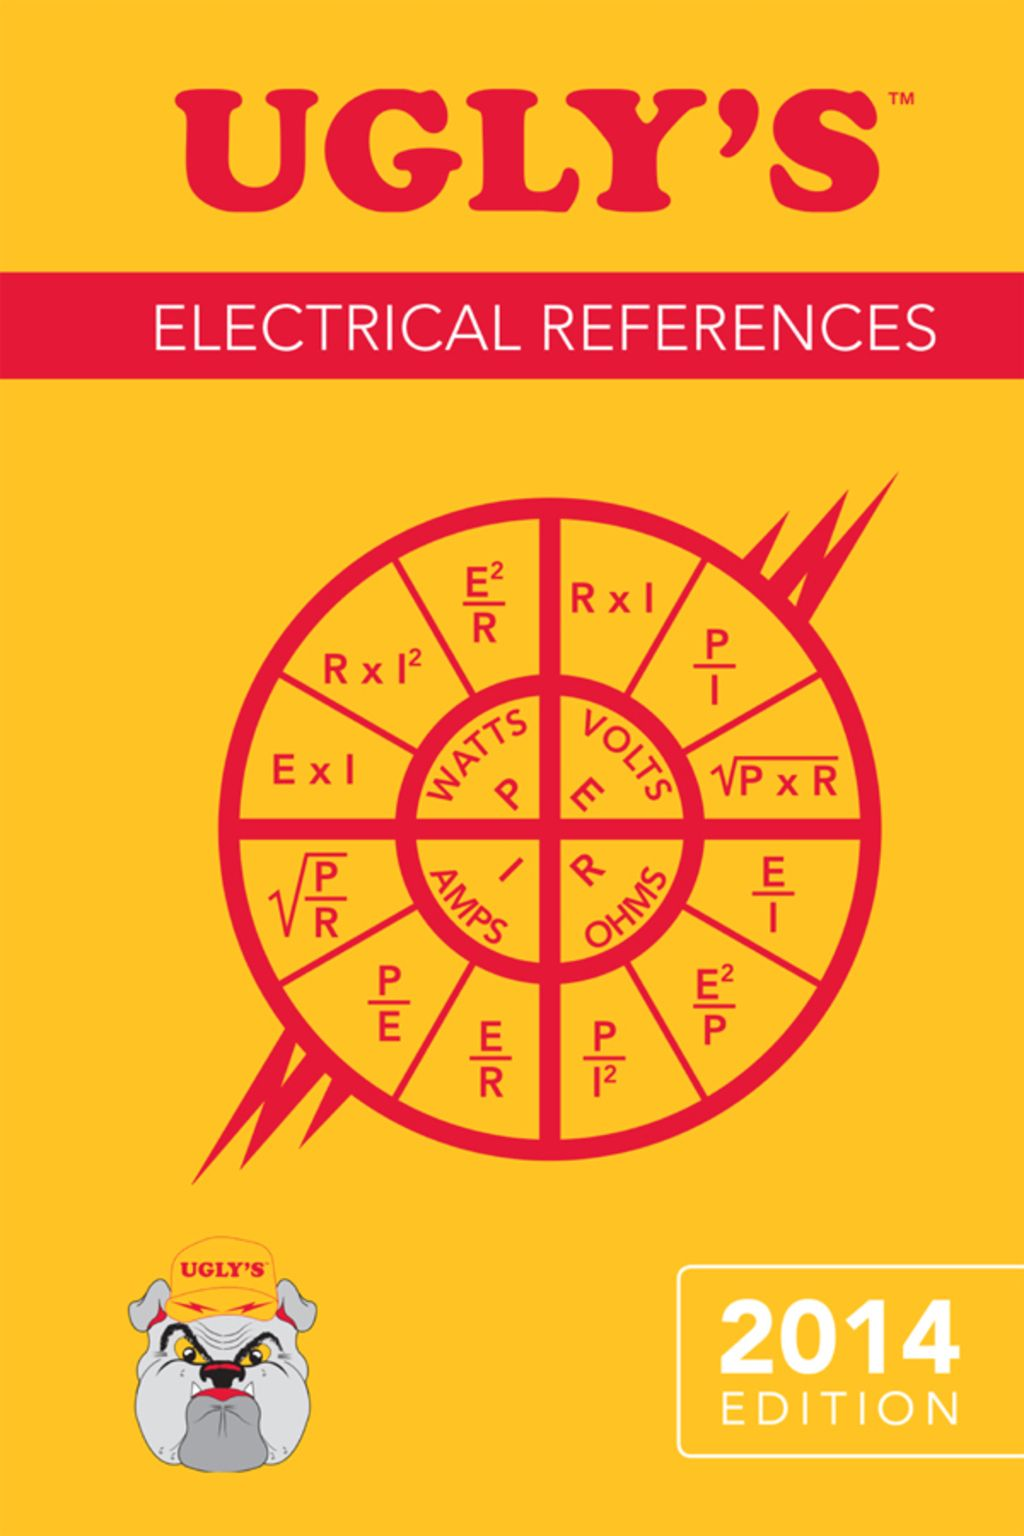 Ugly's Electrical References 2014 Edition (eBook Rental) | Electrical  safety, Conduit bending, Being ugly